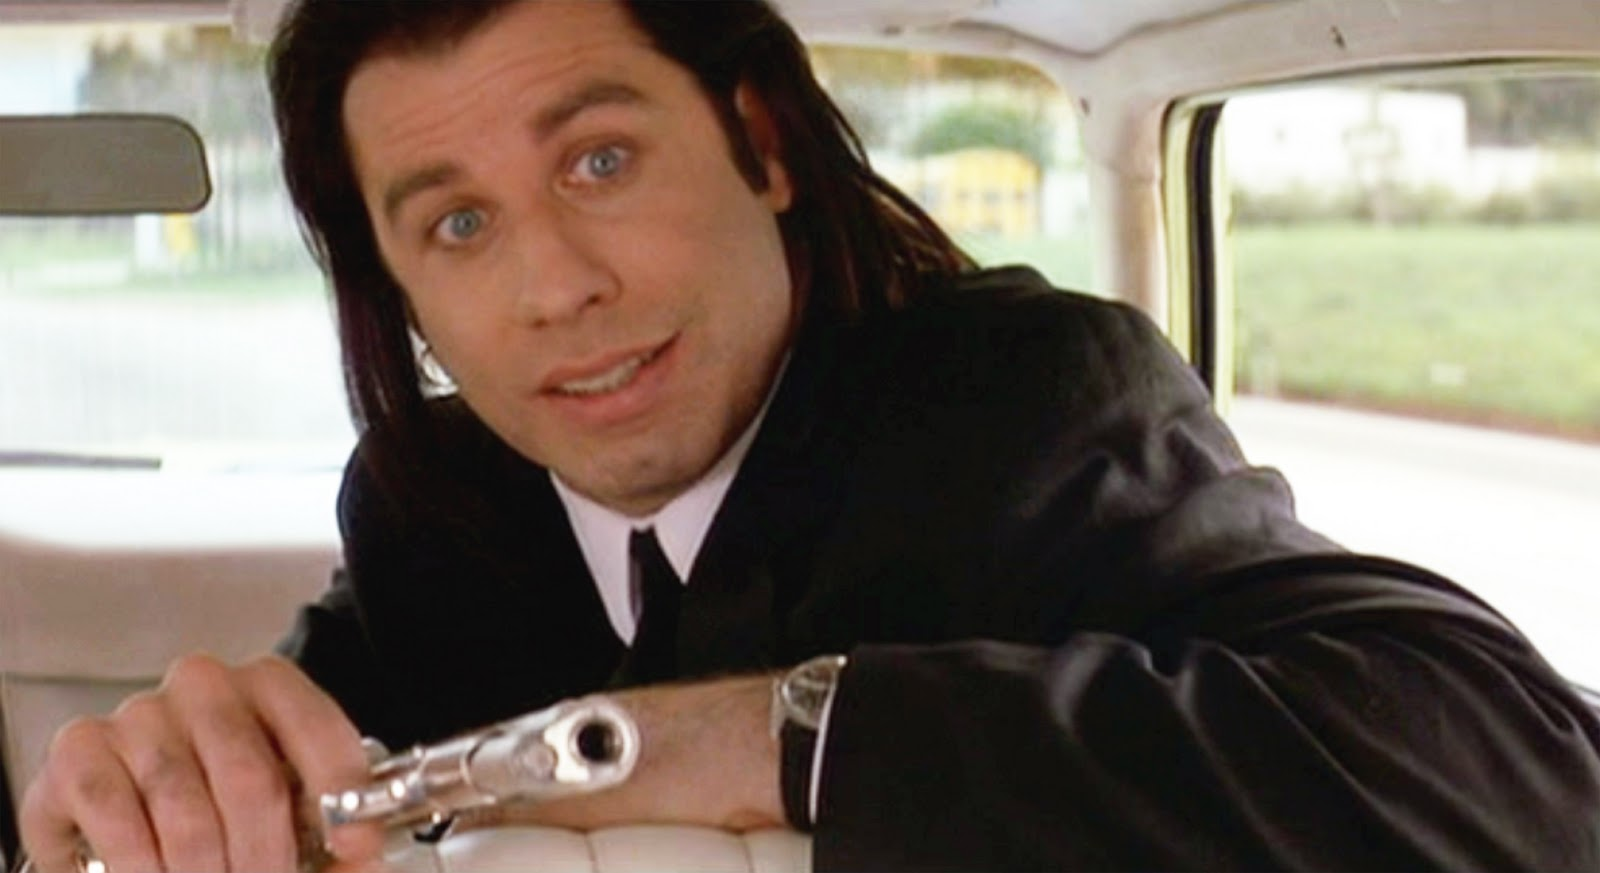 Pulp_Fiction_3_travolta The Thematic Novelty Of Pulp Fiction ...